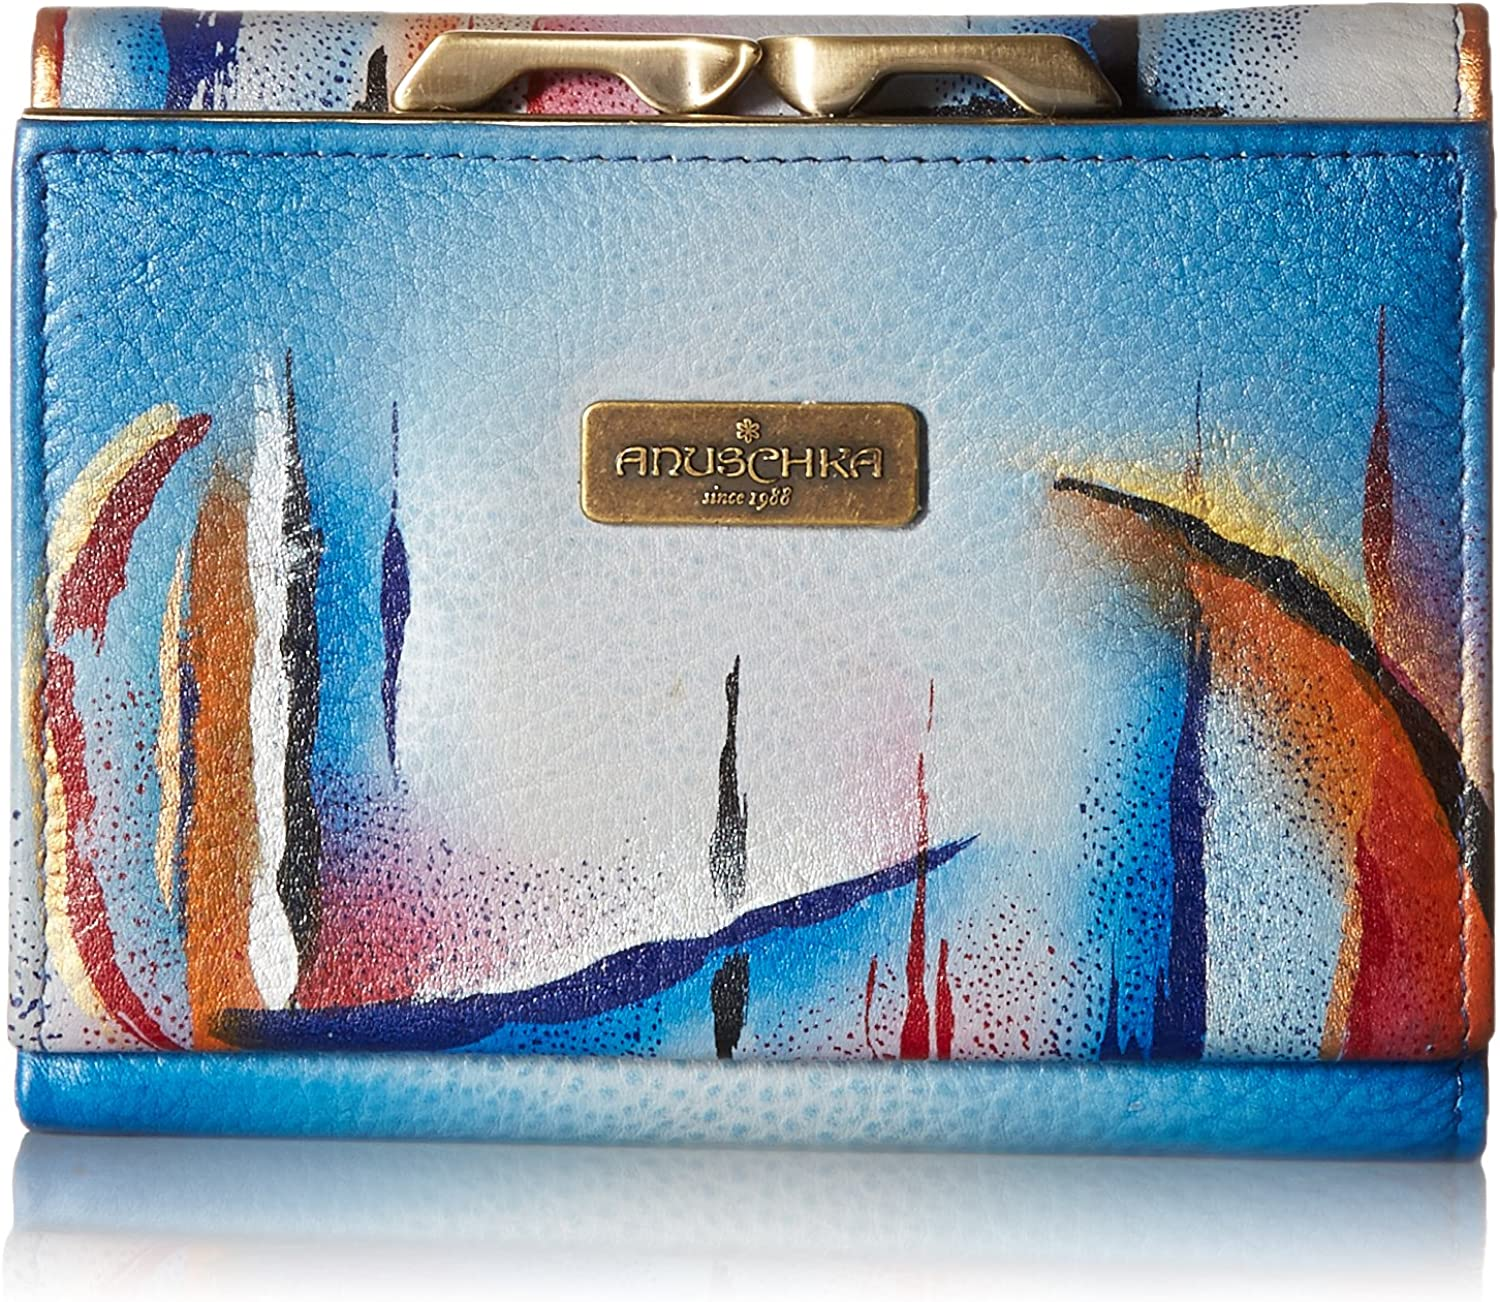 Anuschka Hand Painted Rfid Blocking Small Flap French Wallet Northern Skies Wallet, One Size